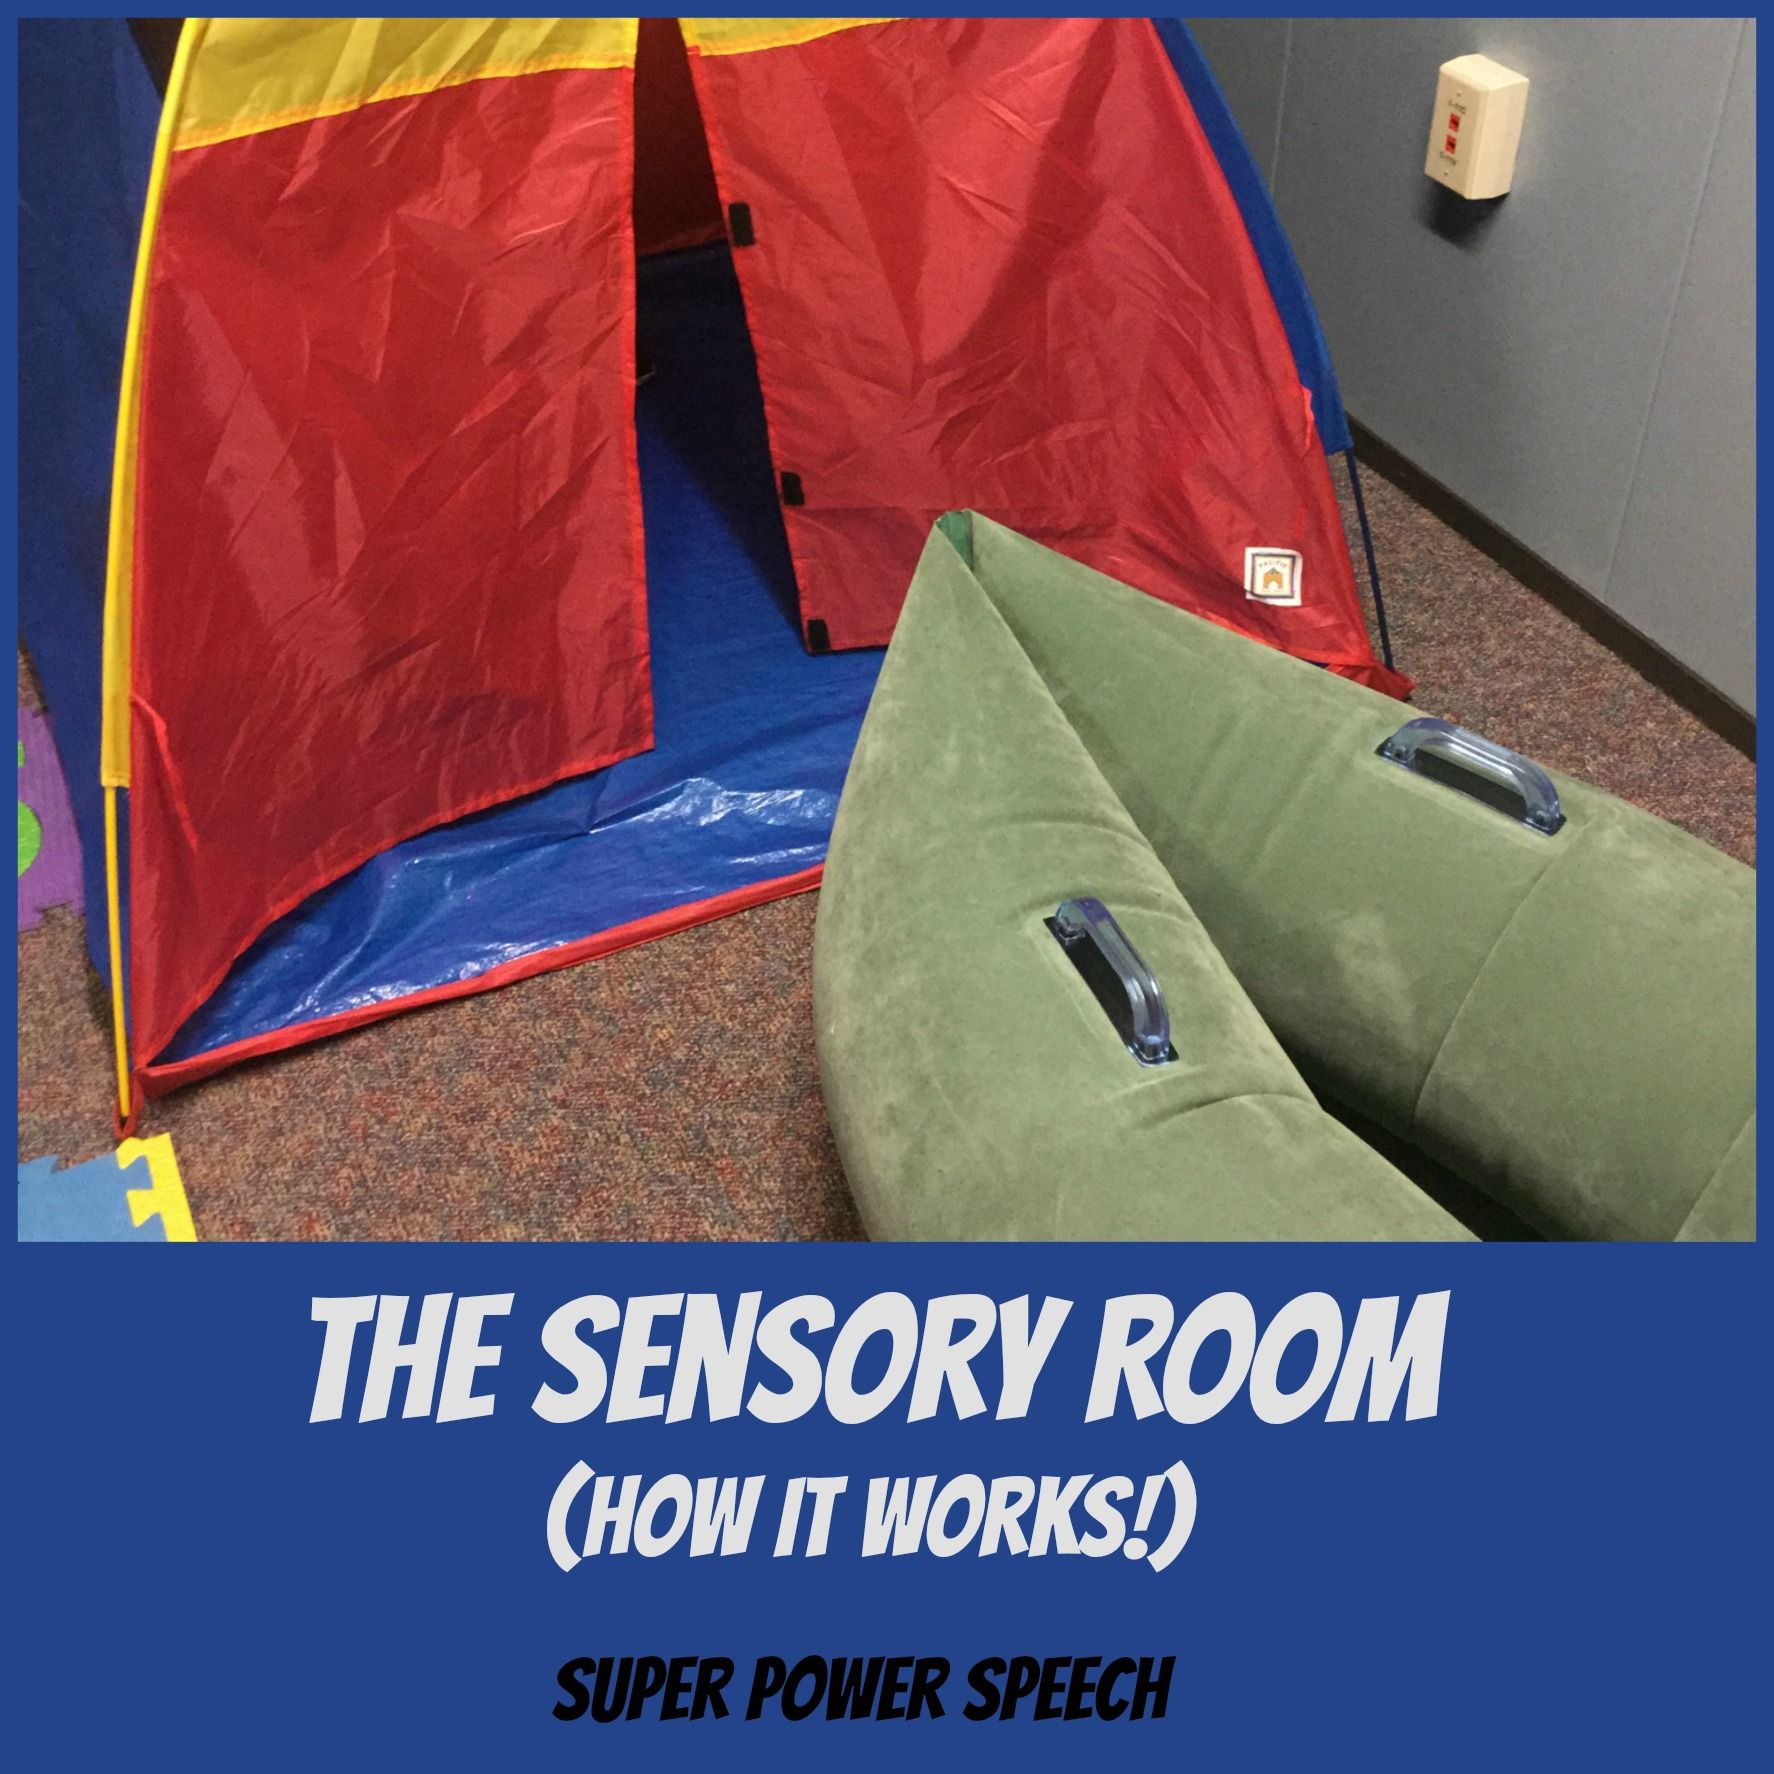 In 2012, our school had an oddly sized, closet-like room become available for use. After speaking with my principal, I wrote a Donor's Choose to turn this space into a Sensory Room for the in…